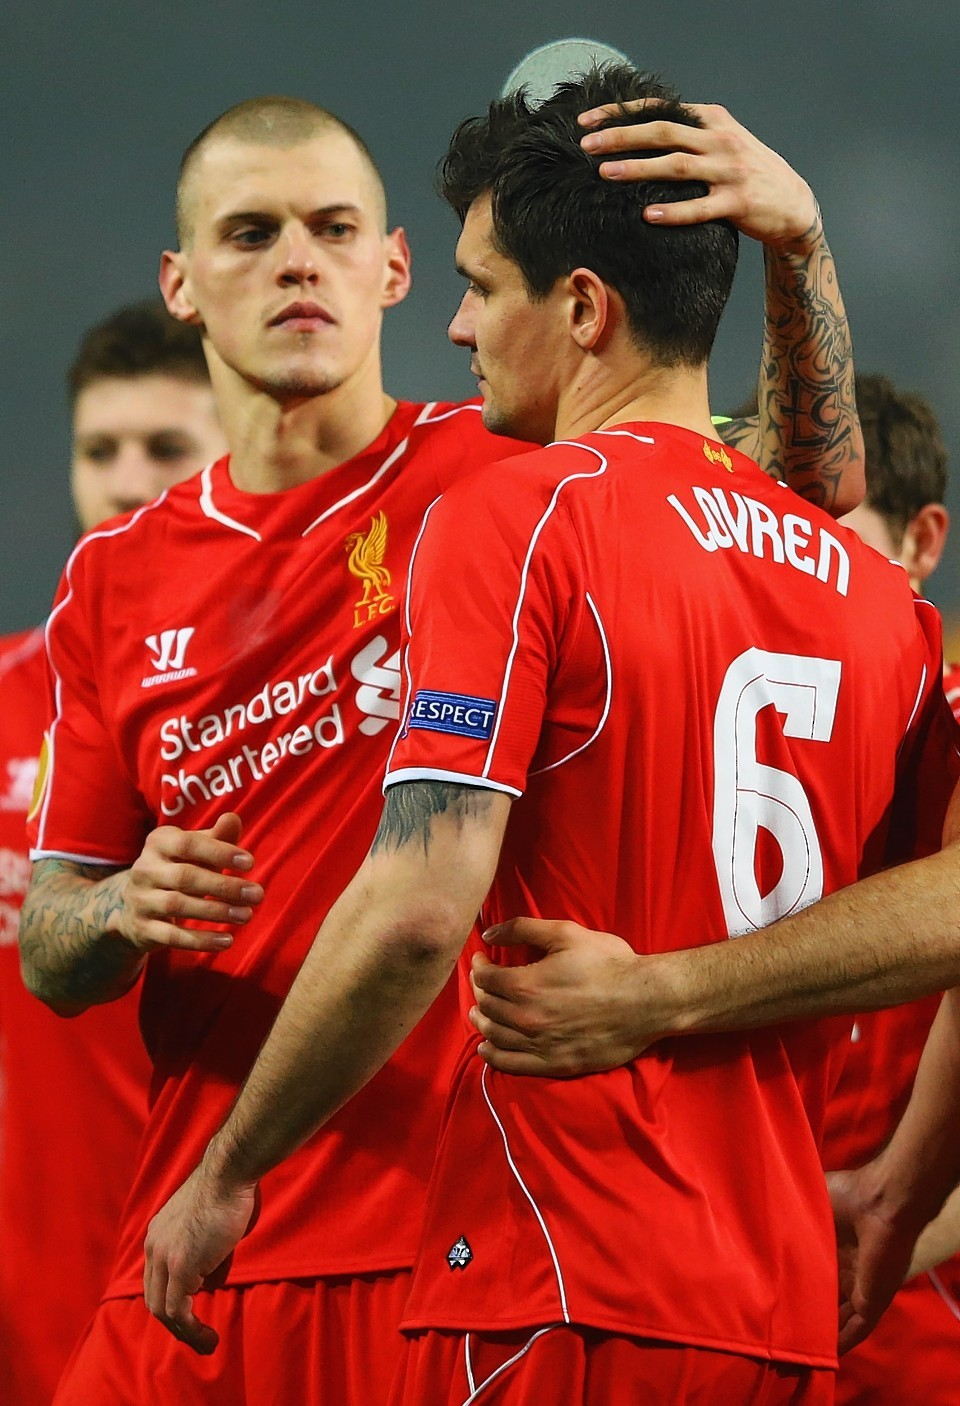 Rather than swotting up Celtic, Daniels watched on as Dejan Lovren missed his penalty to send Liverpool out of the Europa League